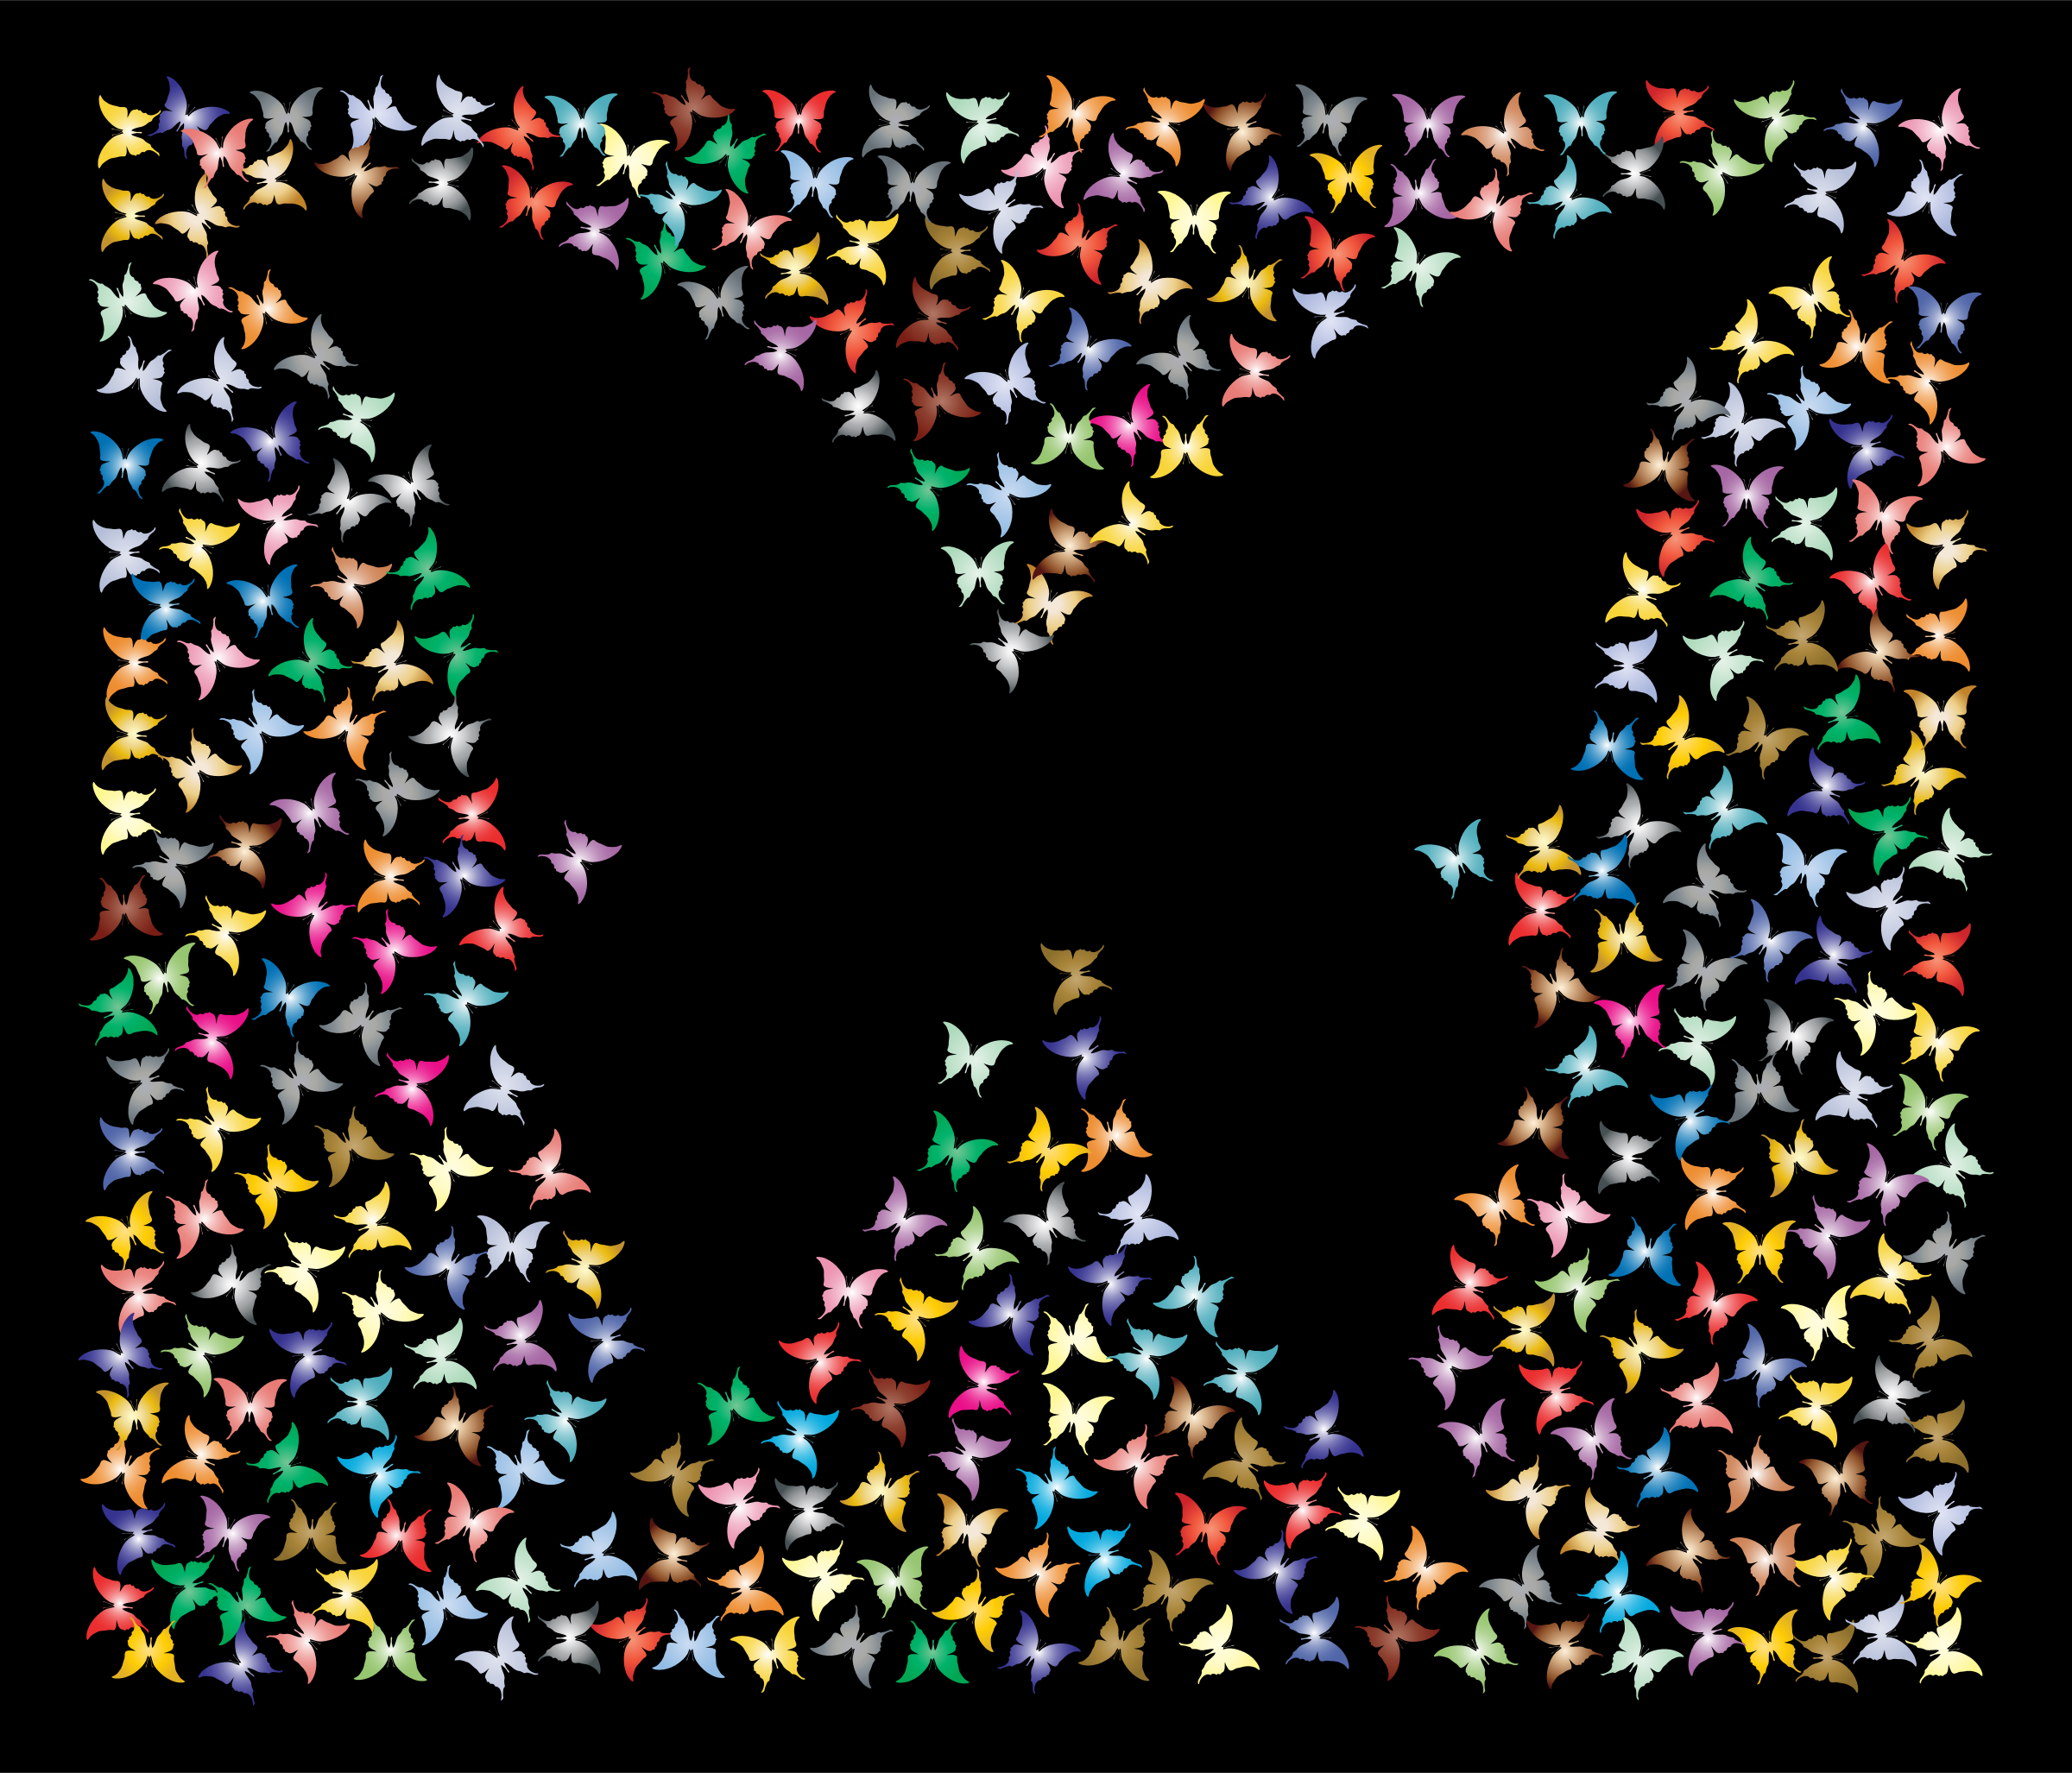 Prismatic Negative Space Butterflies 3 by GDJ